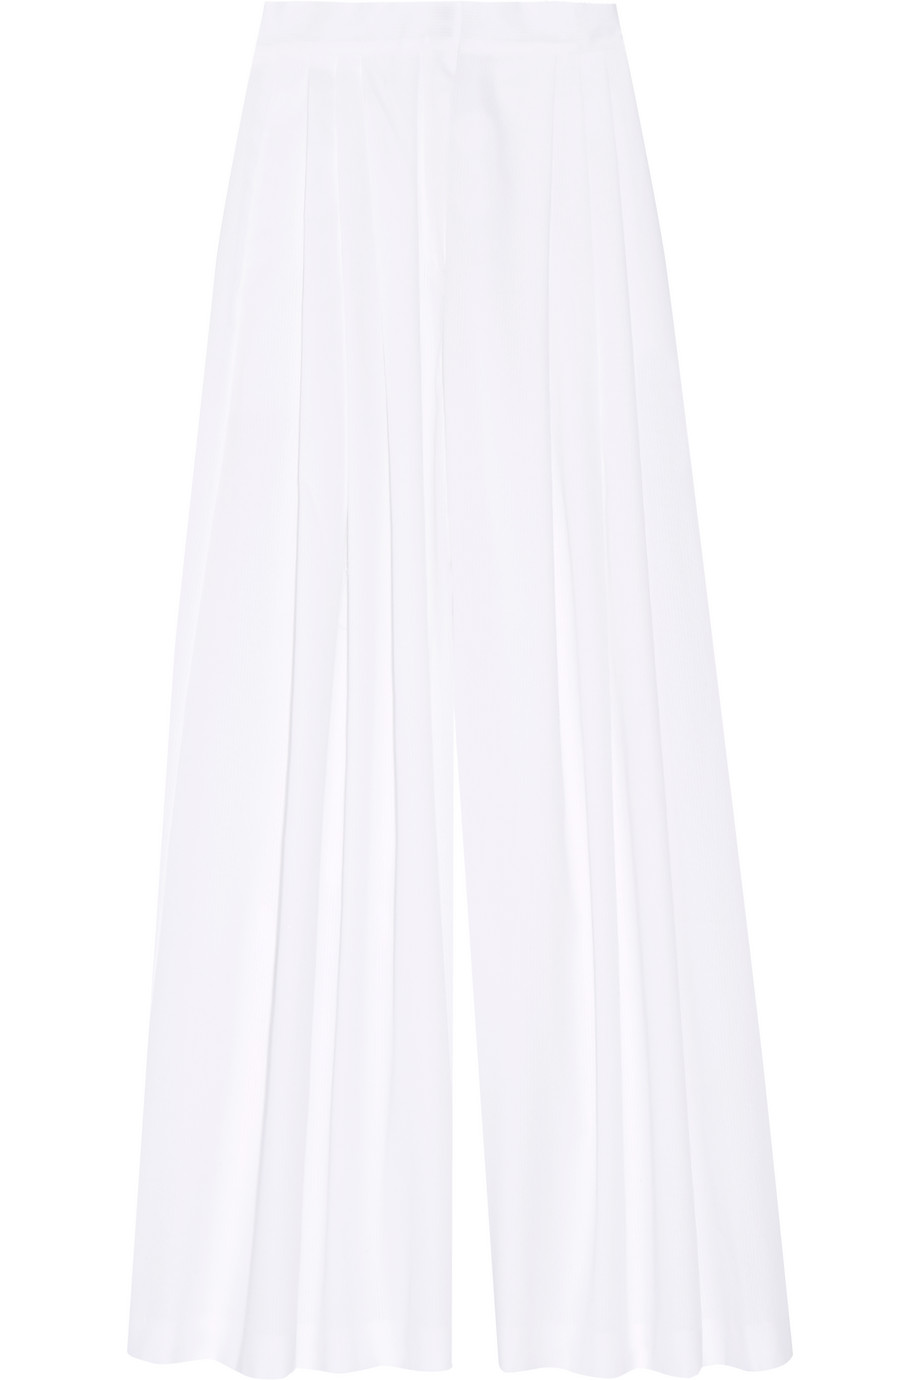 Vika Gazinskaya Pleated Cotton Wide-Leg Pants, White, Women's, Size: 36